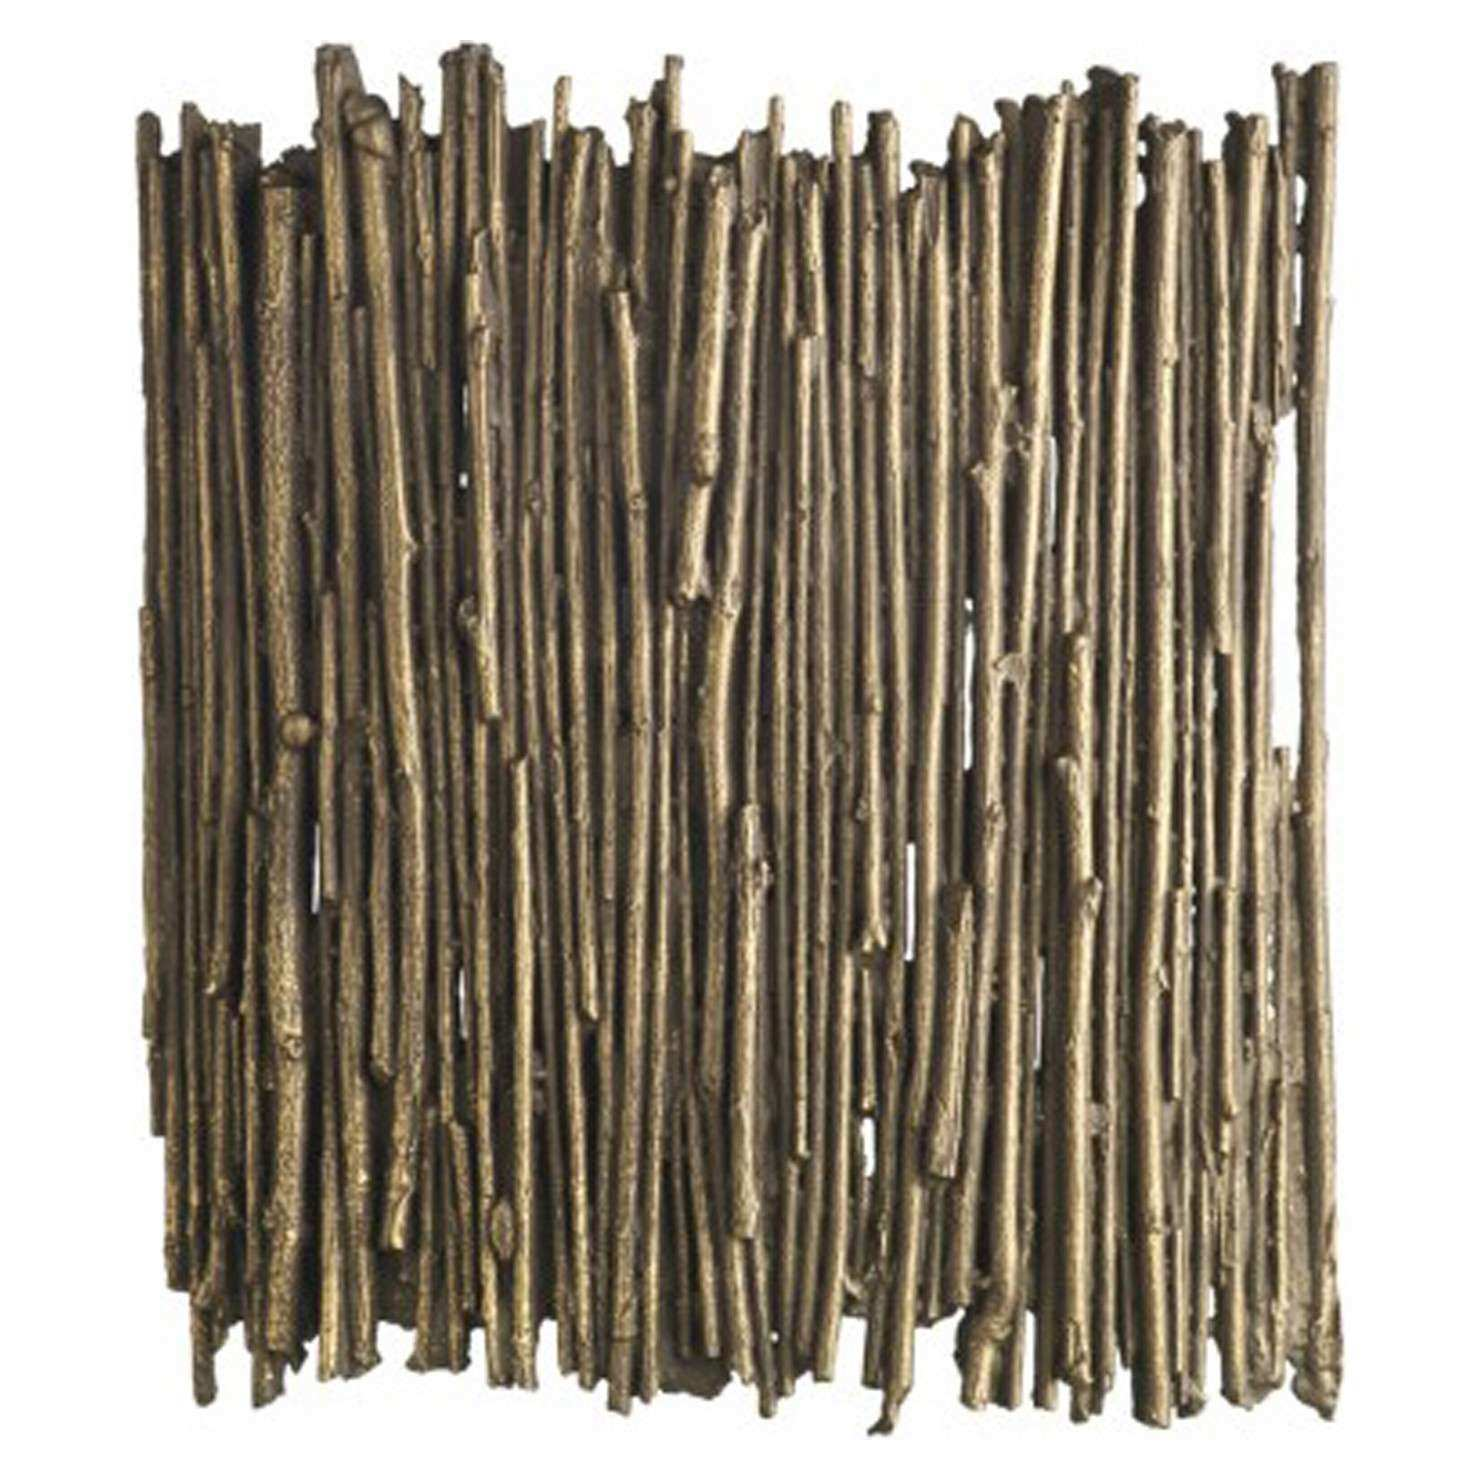 Bamboo Wall Art Gold